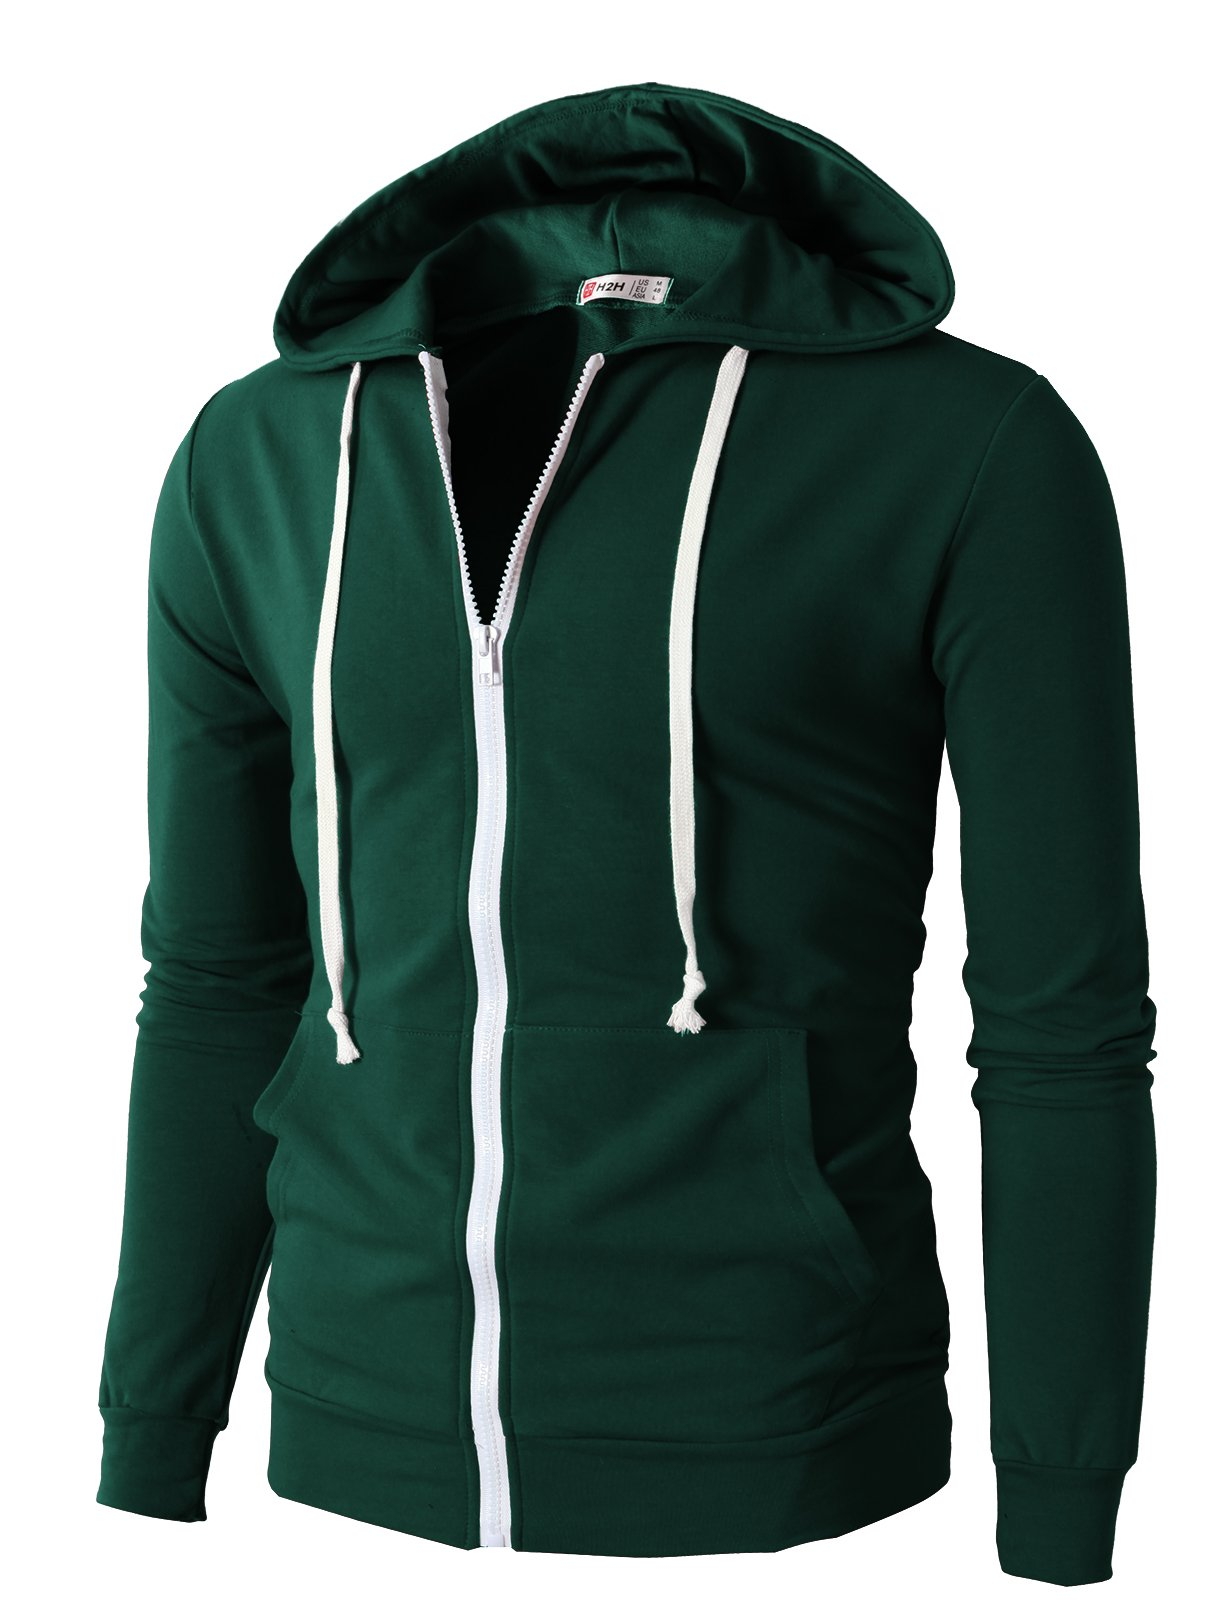 H2H Men's Casual Striped Drawstring Hooded And Zipper Closure Hoodies FORESTGREEN US XL/Asia XXXL (JNSK24) by H2H (Image #1)